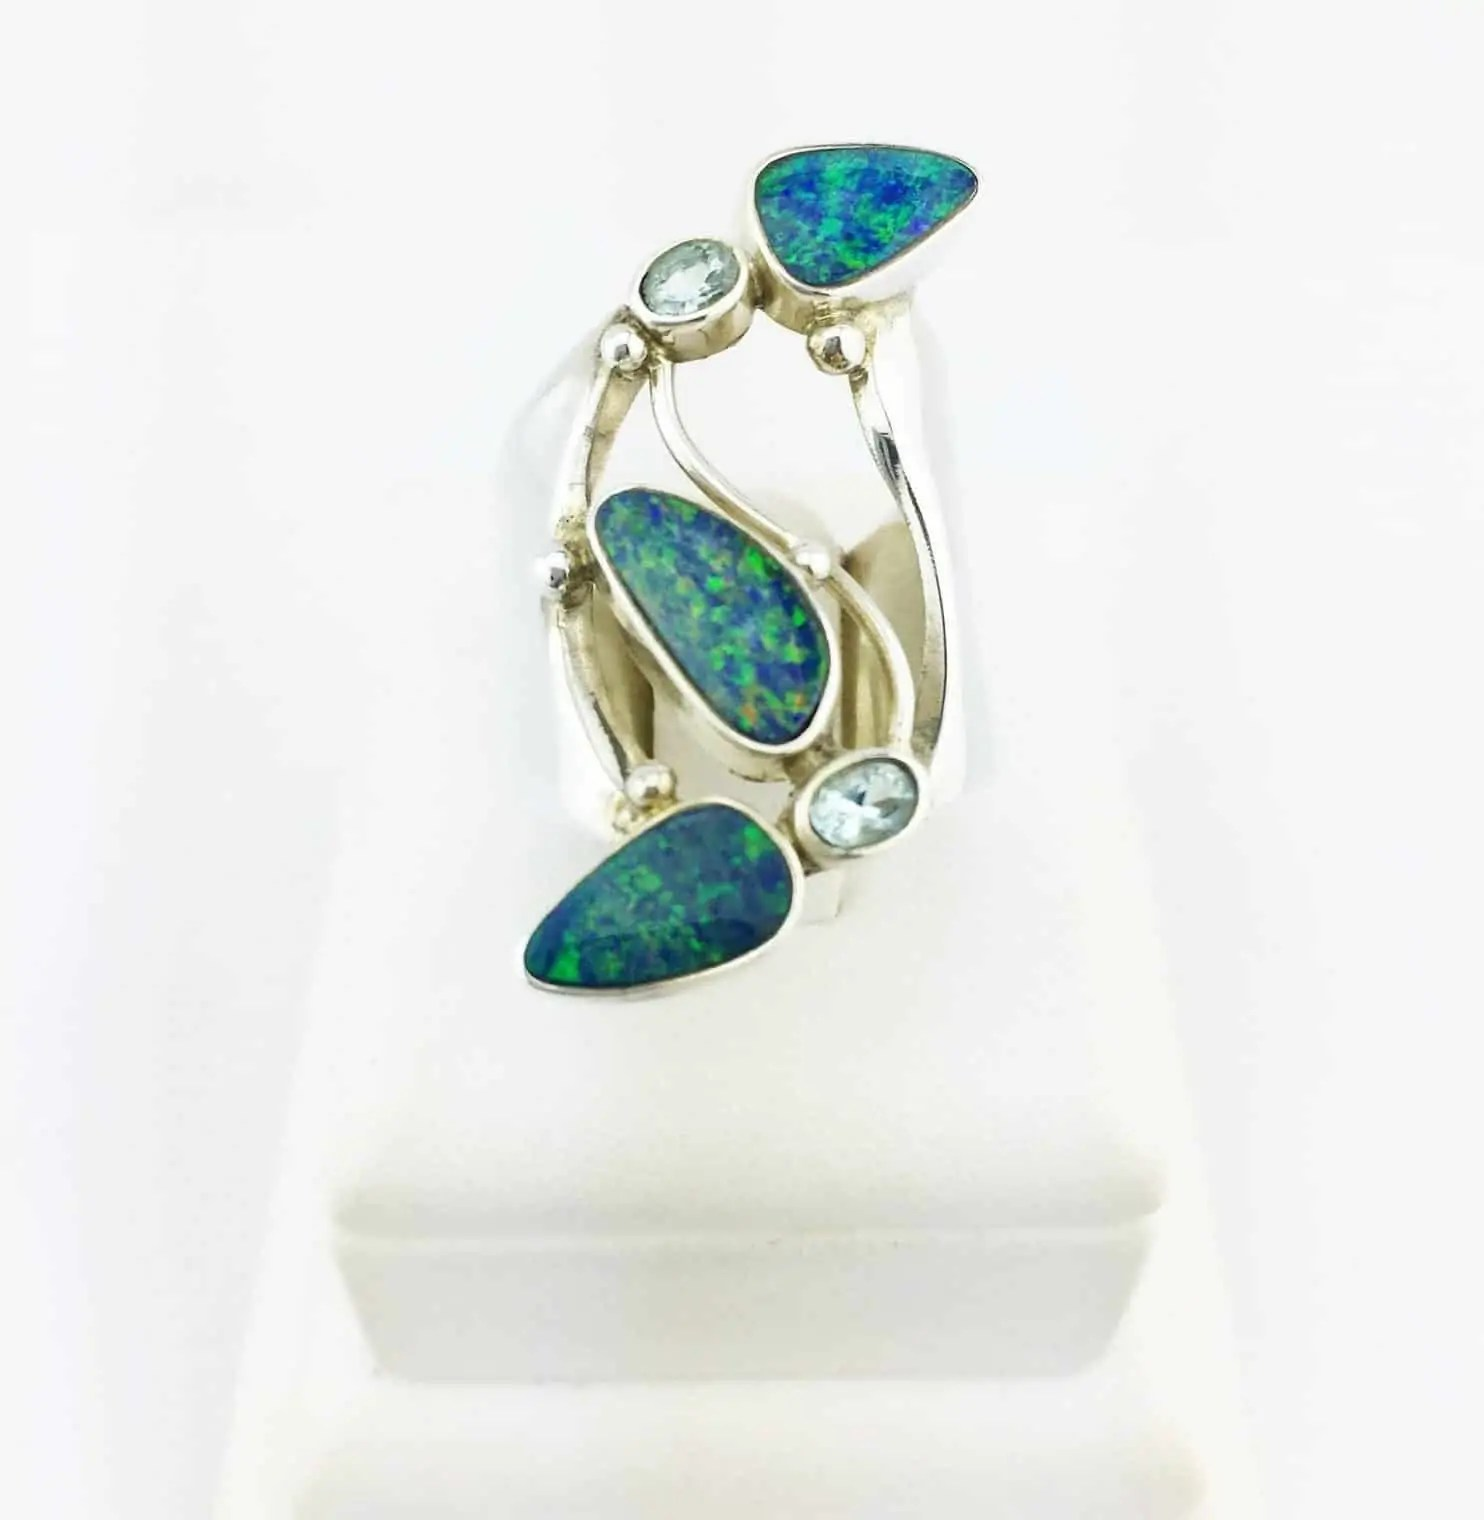 opal topaz ring scaled e1607228481490 Snazzy Trips